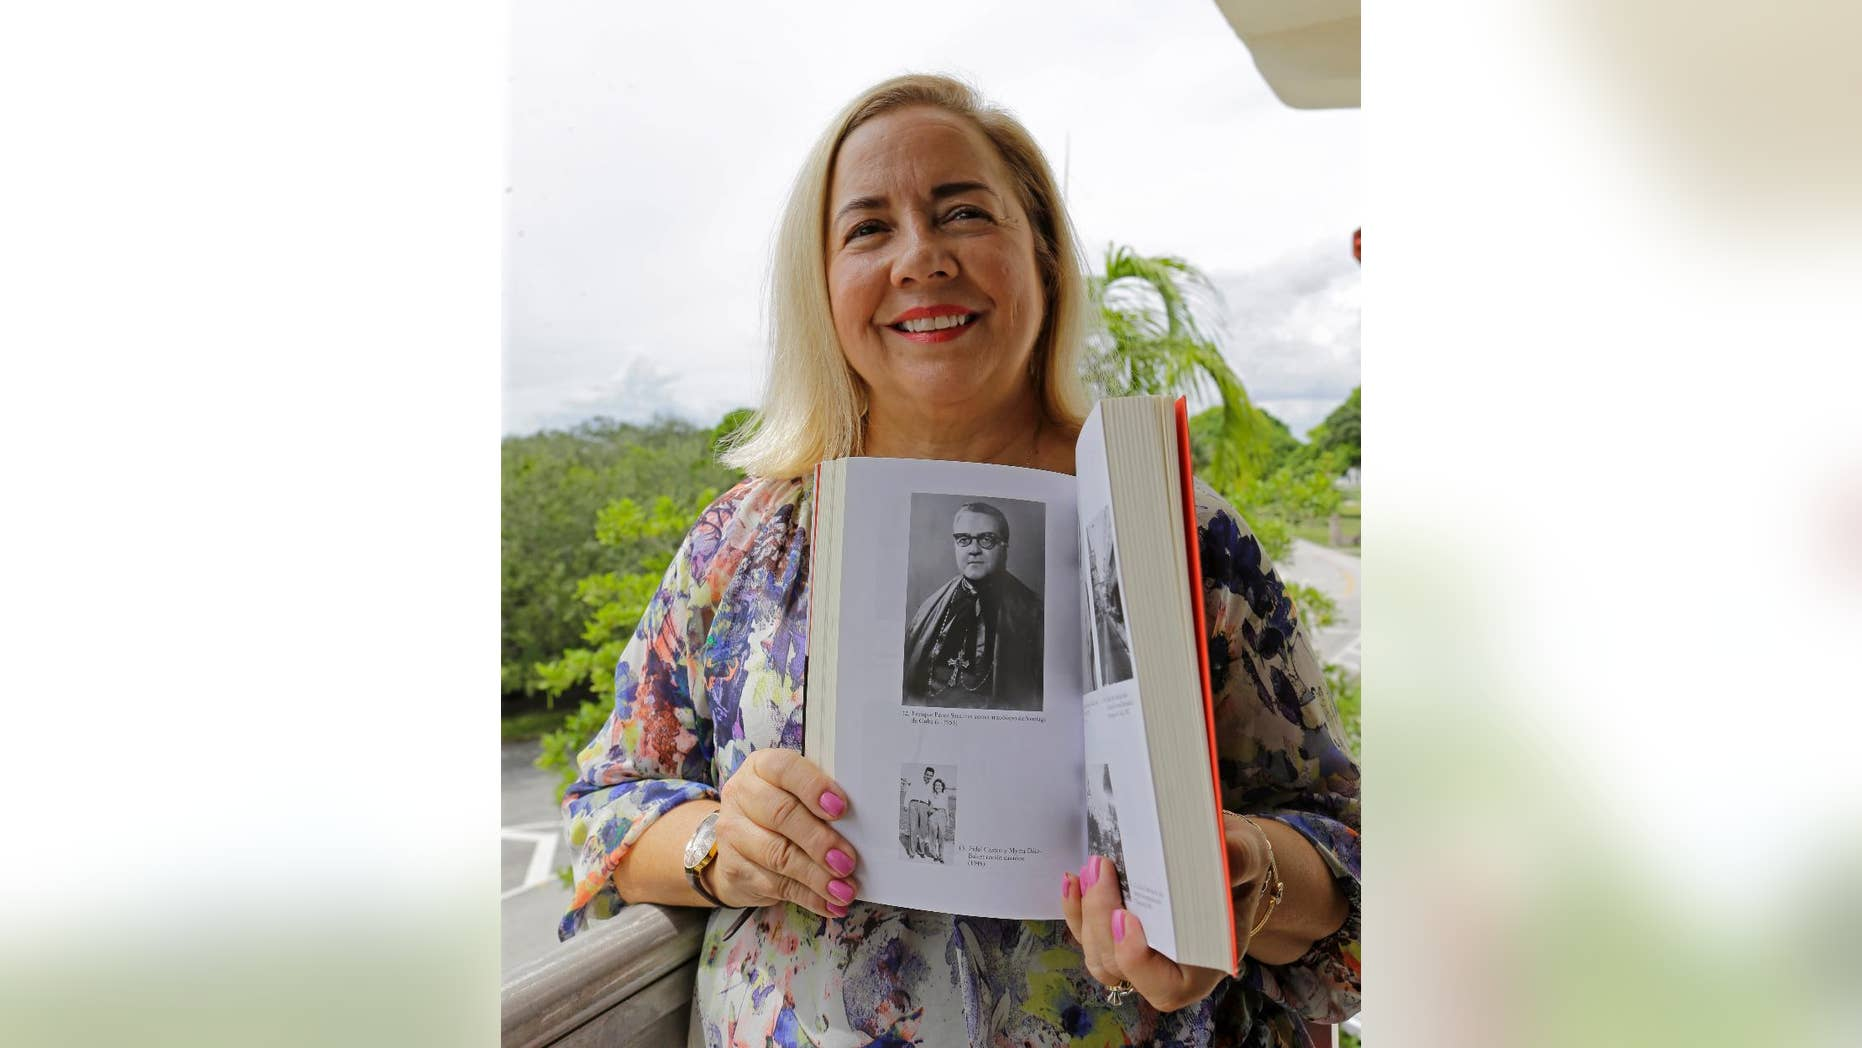 In this Sept. 10, 2015 photo, Frances Serantes Gomez poses with a photo of her great uncle, Archbishop Enrique Perez Serantes, at her home in Coral Gables, Florida. Serantes Gomez's great uncle is the former archbishop of Santiago, Cuba who saved Fidel Castro's life. After Castro seized power, Serantes' support turned to opposition and the prelate's family fled. Frances is among several hundred Cuban-Americans expected to make a pilgrimage to Cuba for Pope Francis' visit, and among thousands who are trying to finally put five decades of bitterness behind them. (AP Photo/Alan Diaz)